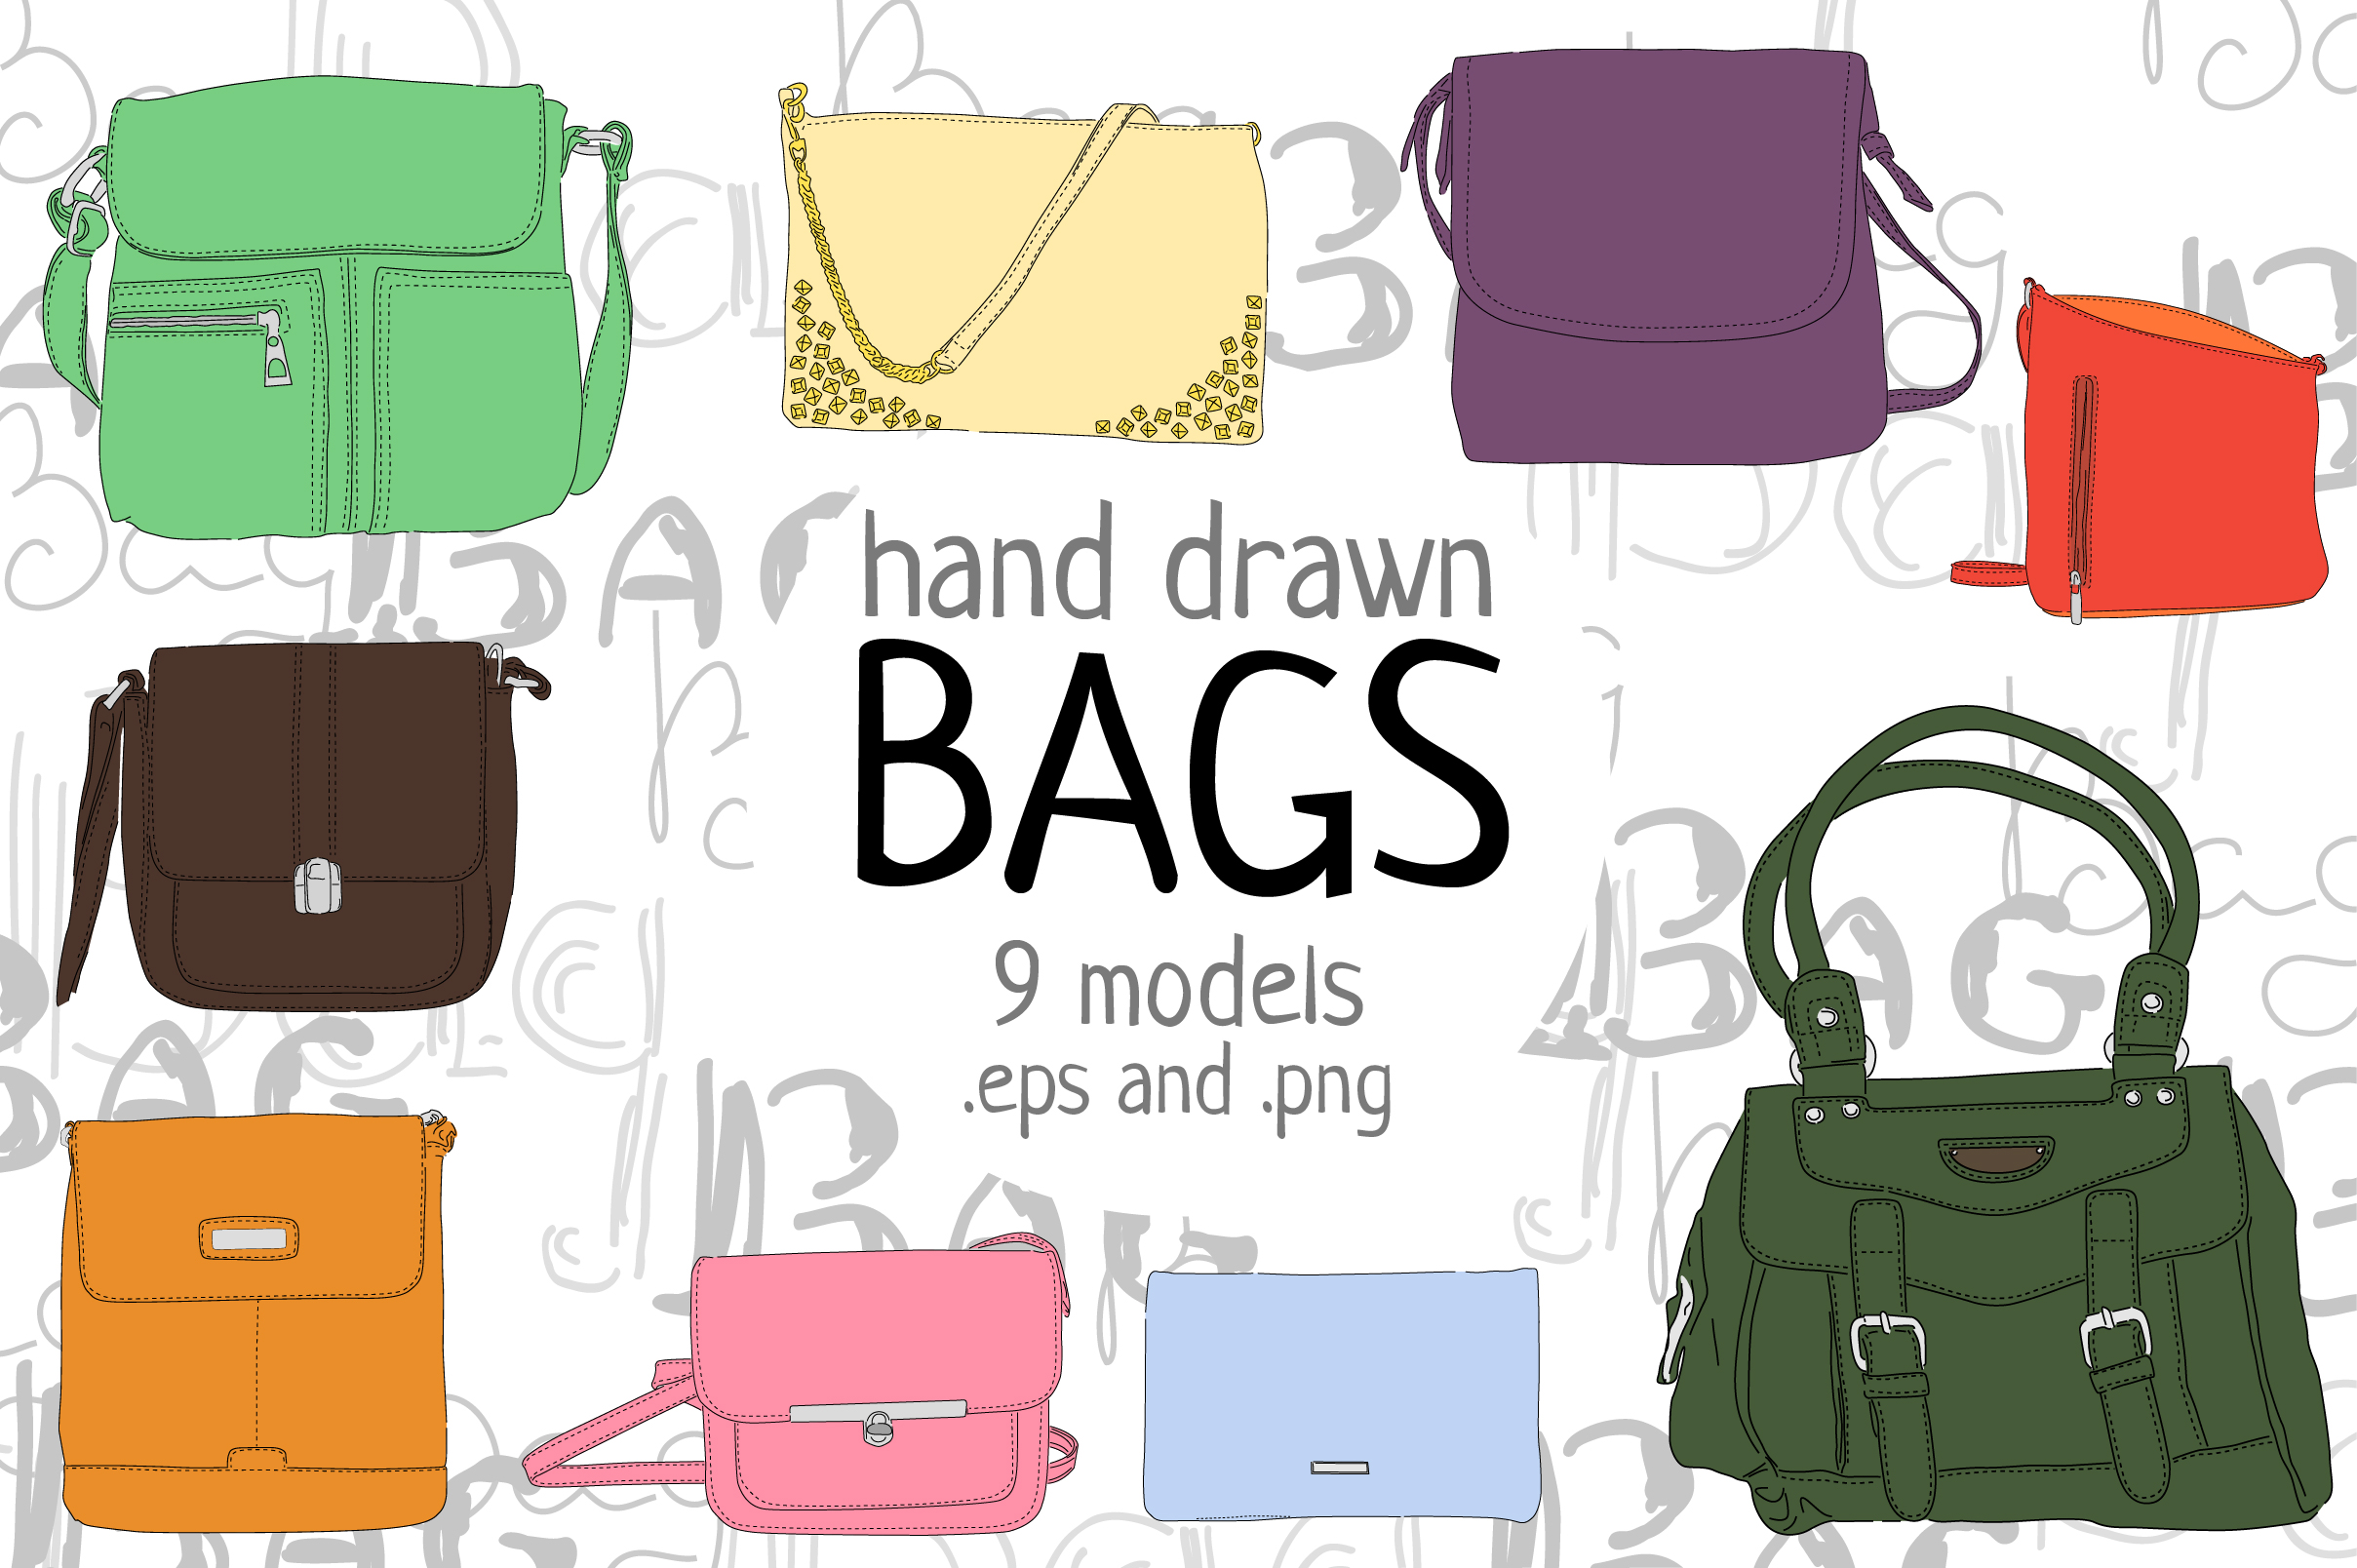 Hand drawn bags example image 2